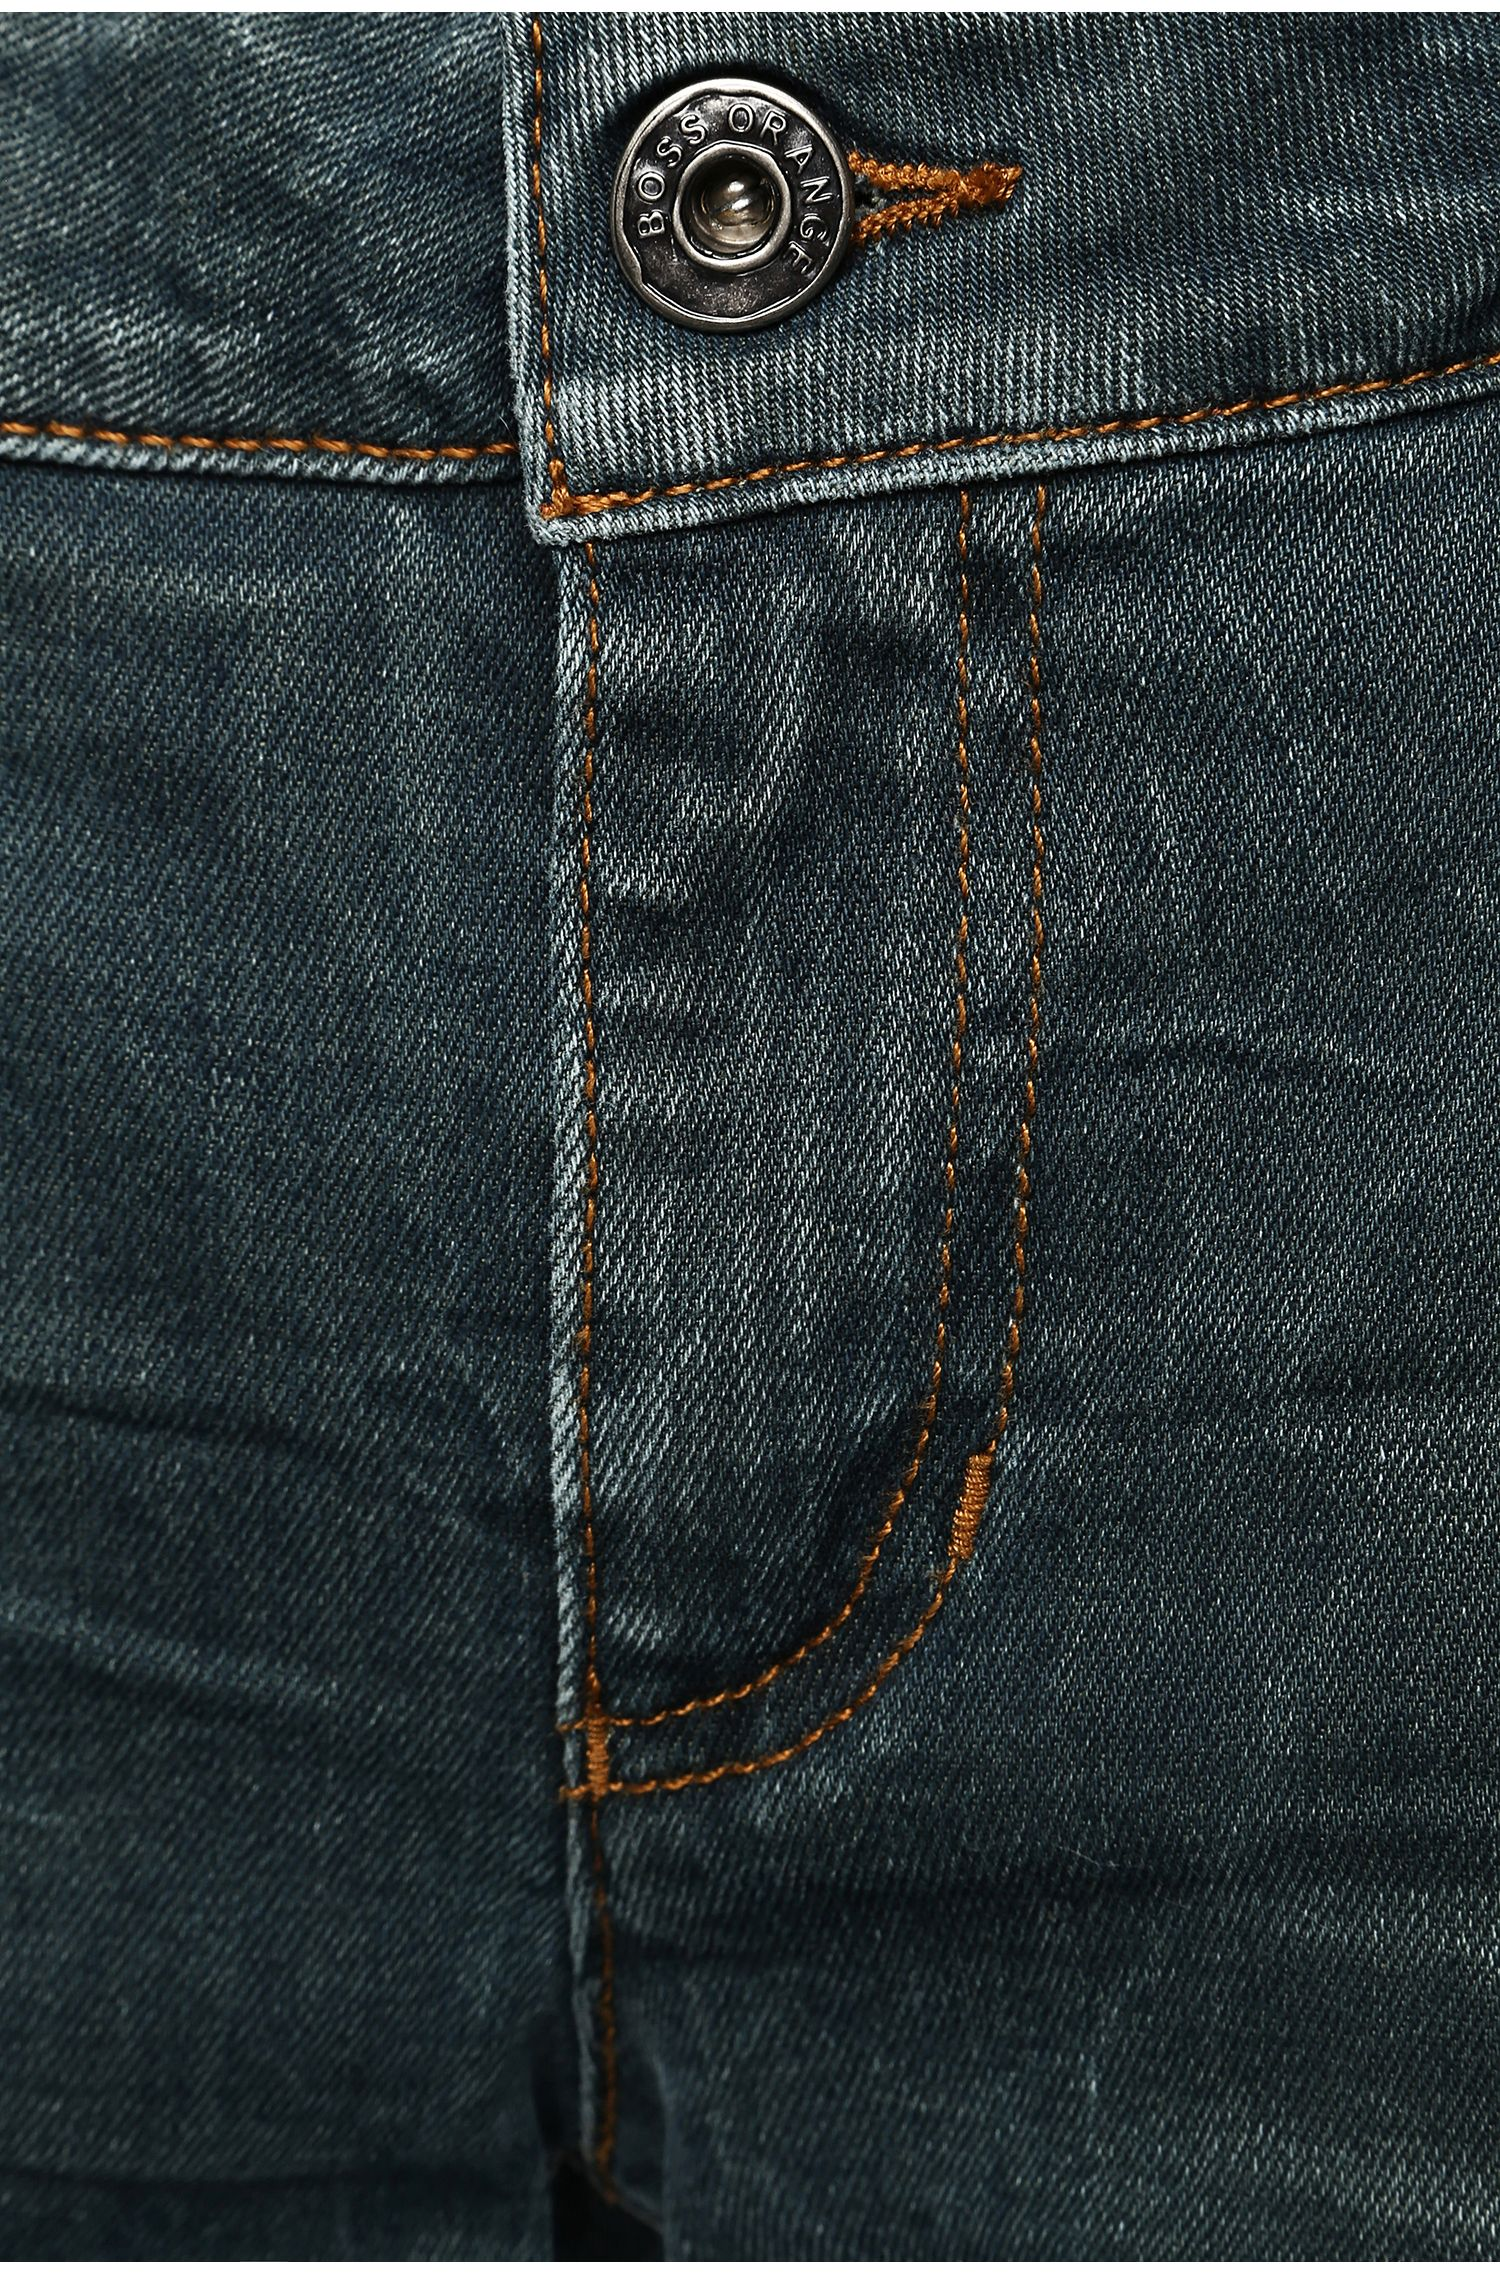 Jeans Slim Fit en coton stretch : « Orange J20 Lunja2 »